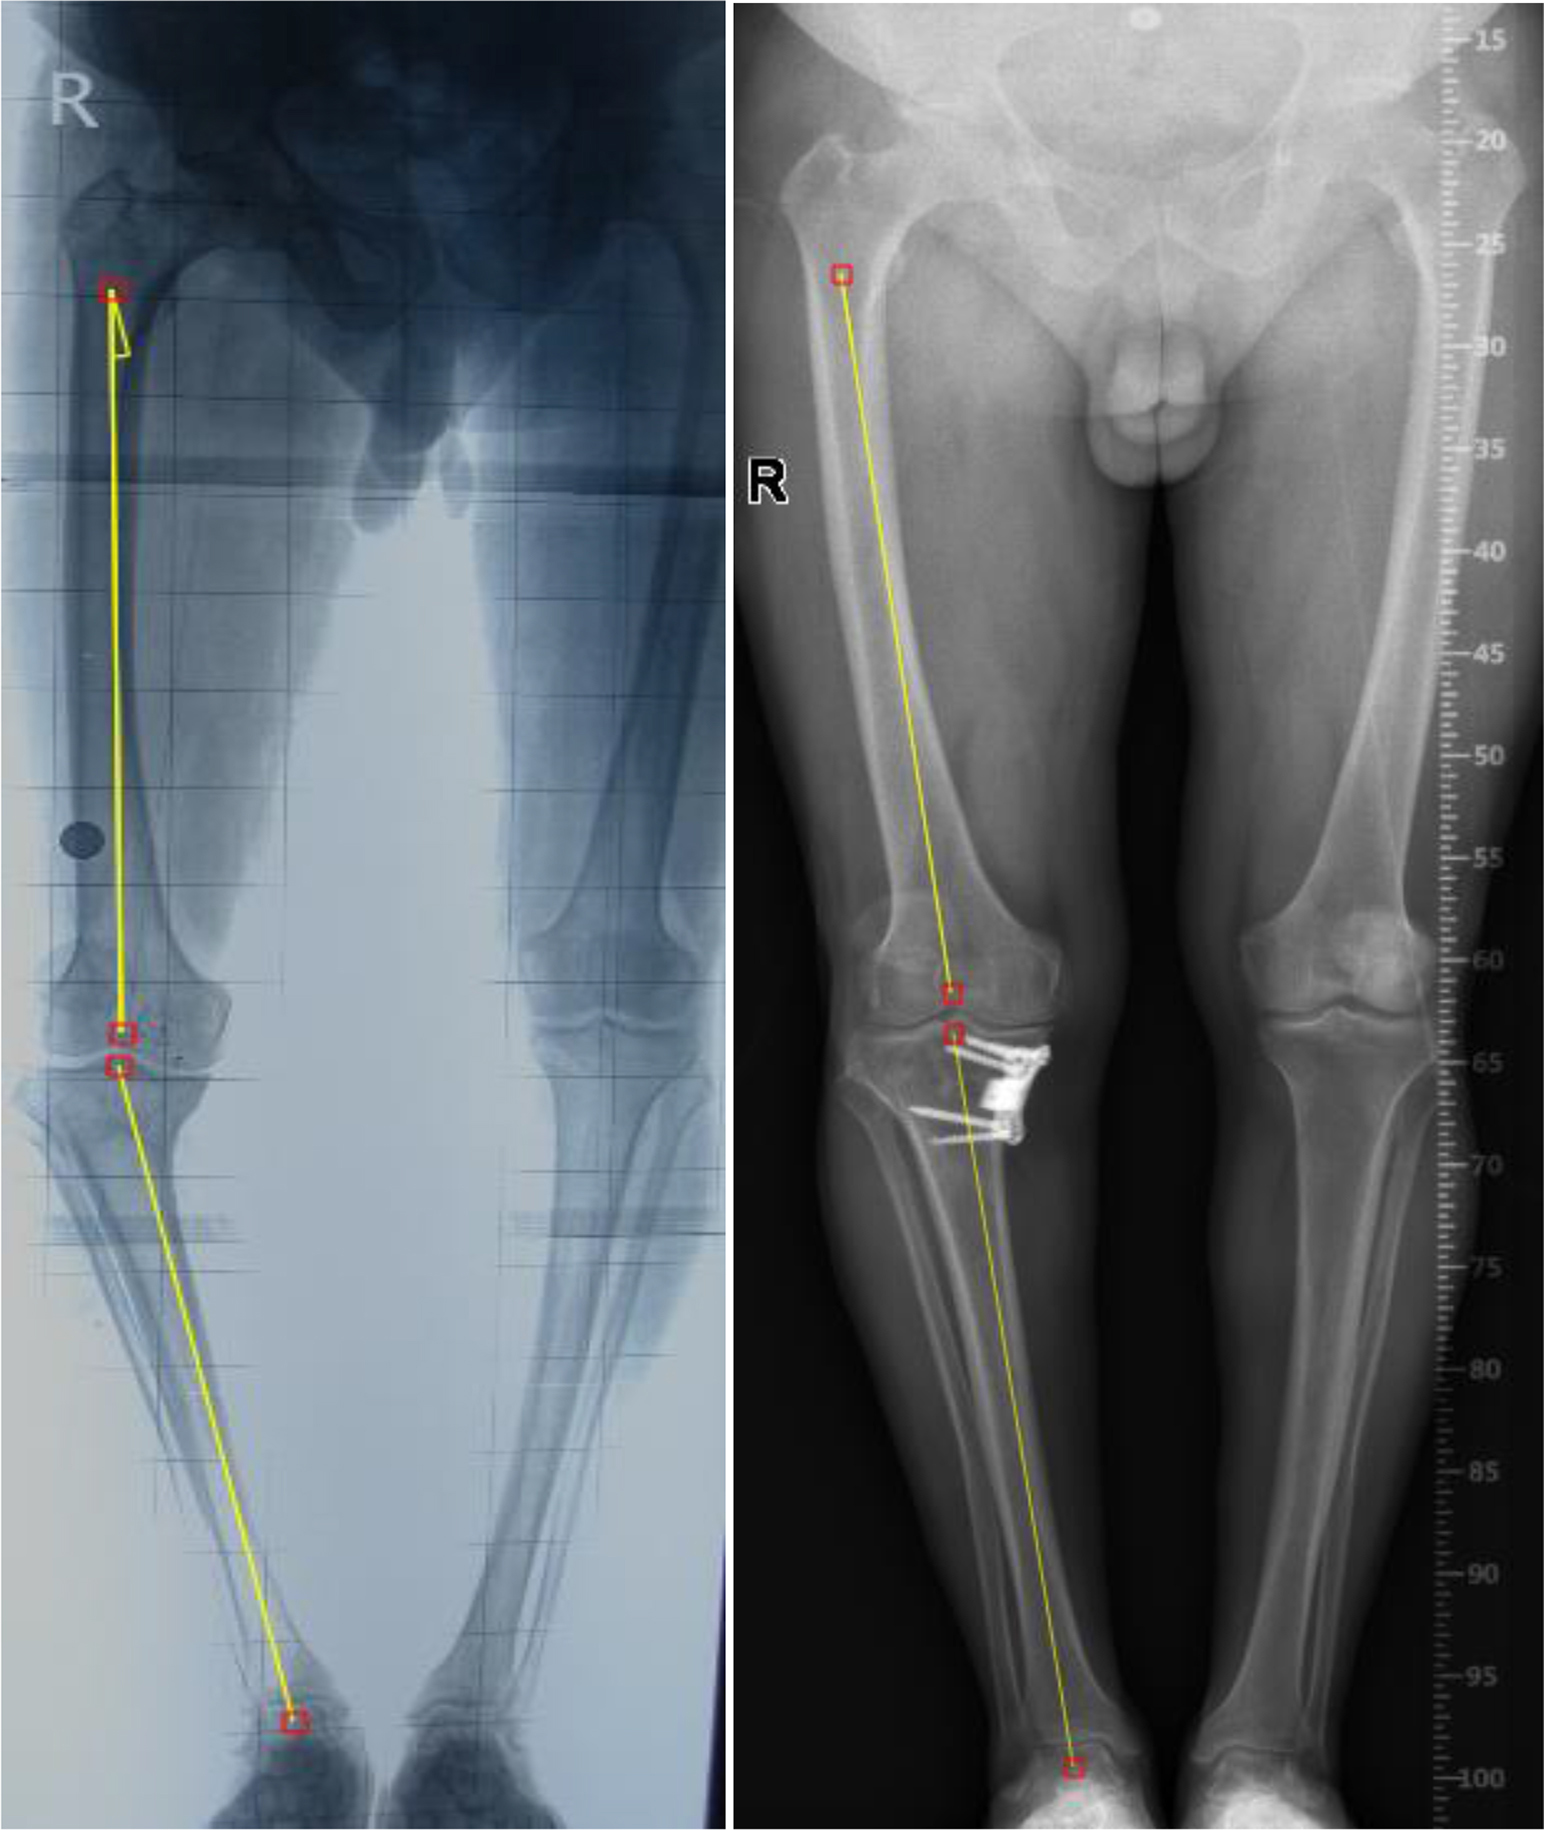 Orthoroentgenographs of a patient before (Left) and ten years after MOWHTO (Right) demonstrating under-correction. (Preoperative LTFA: 196°, postoperative LTFA: 180°)